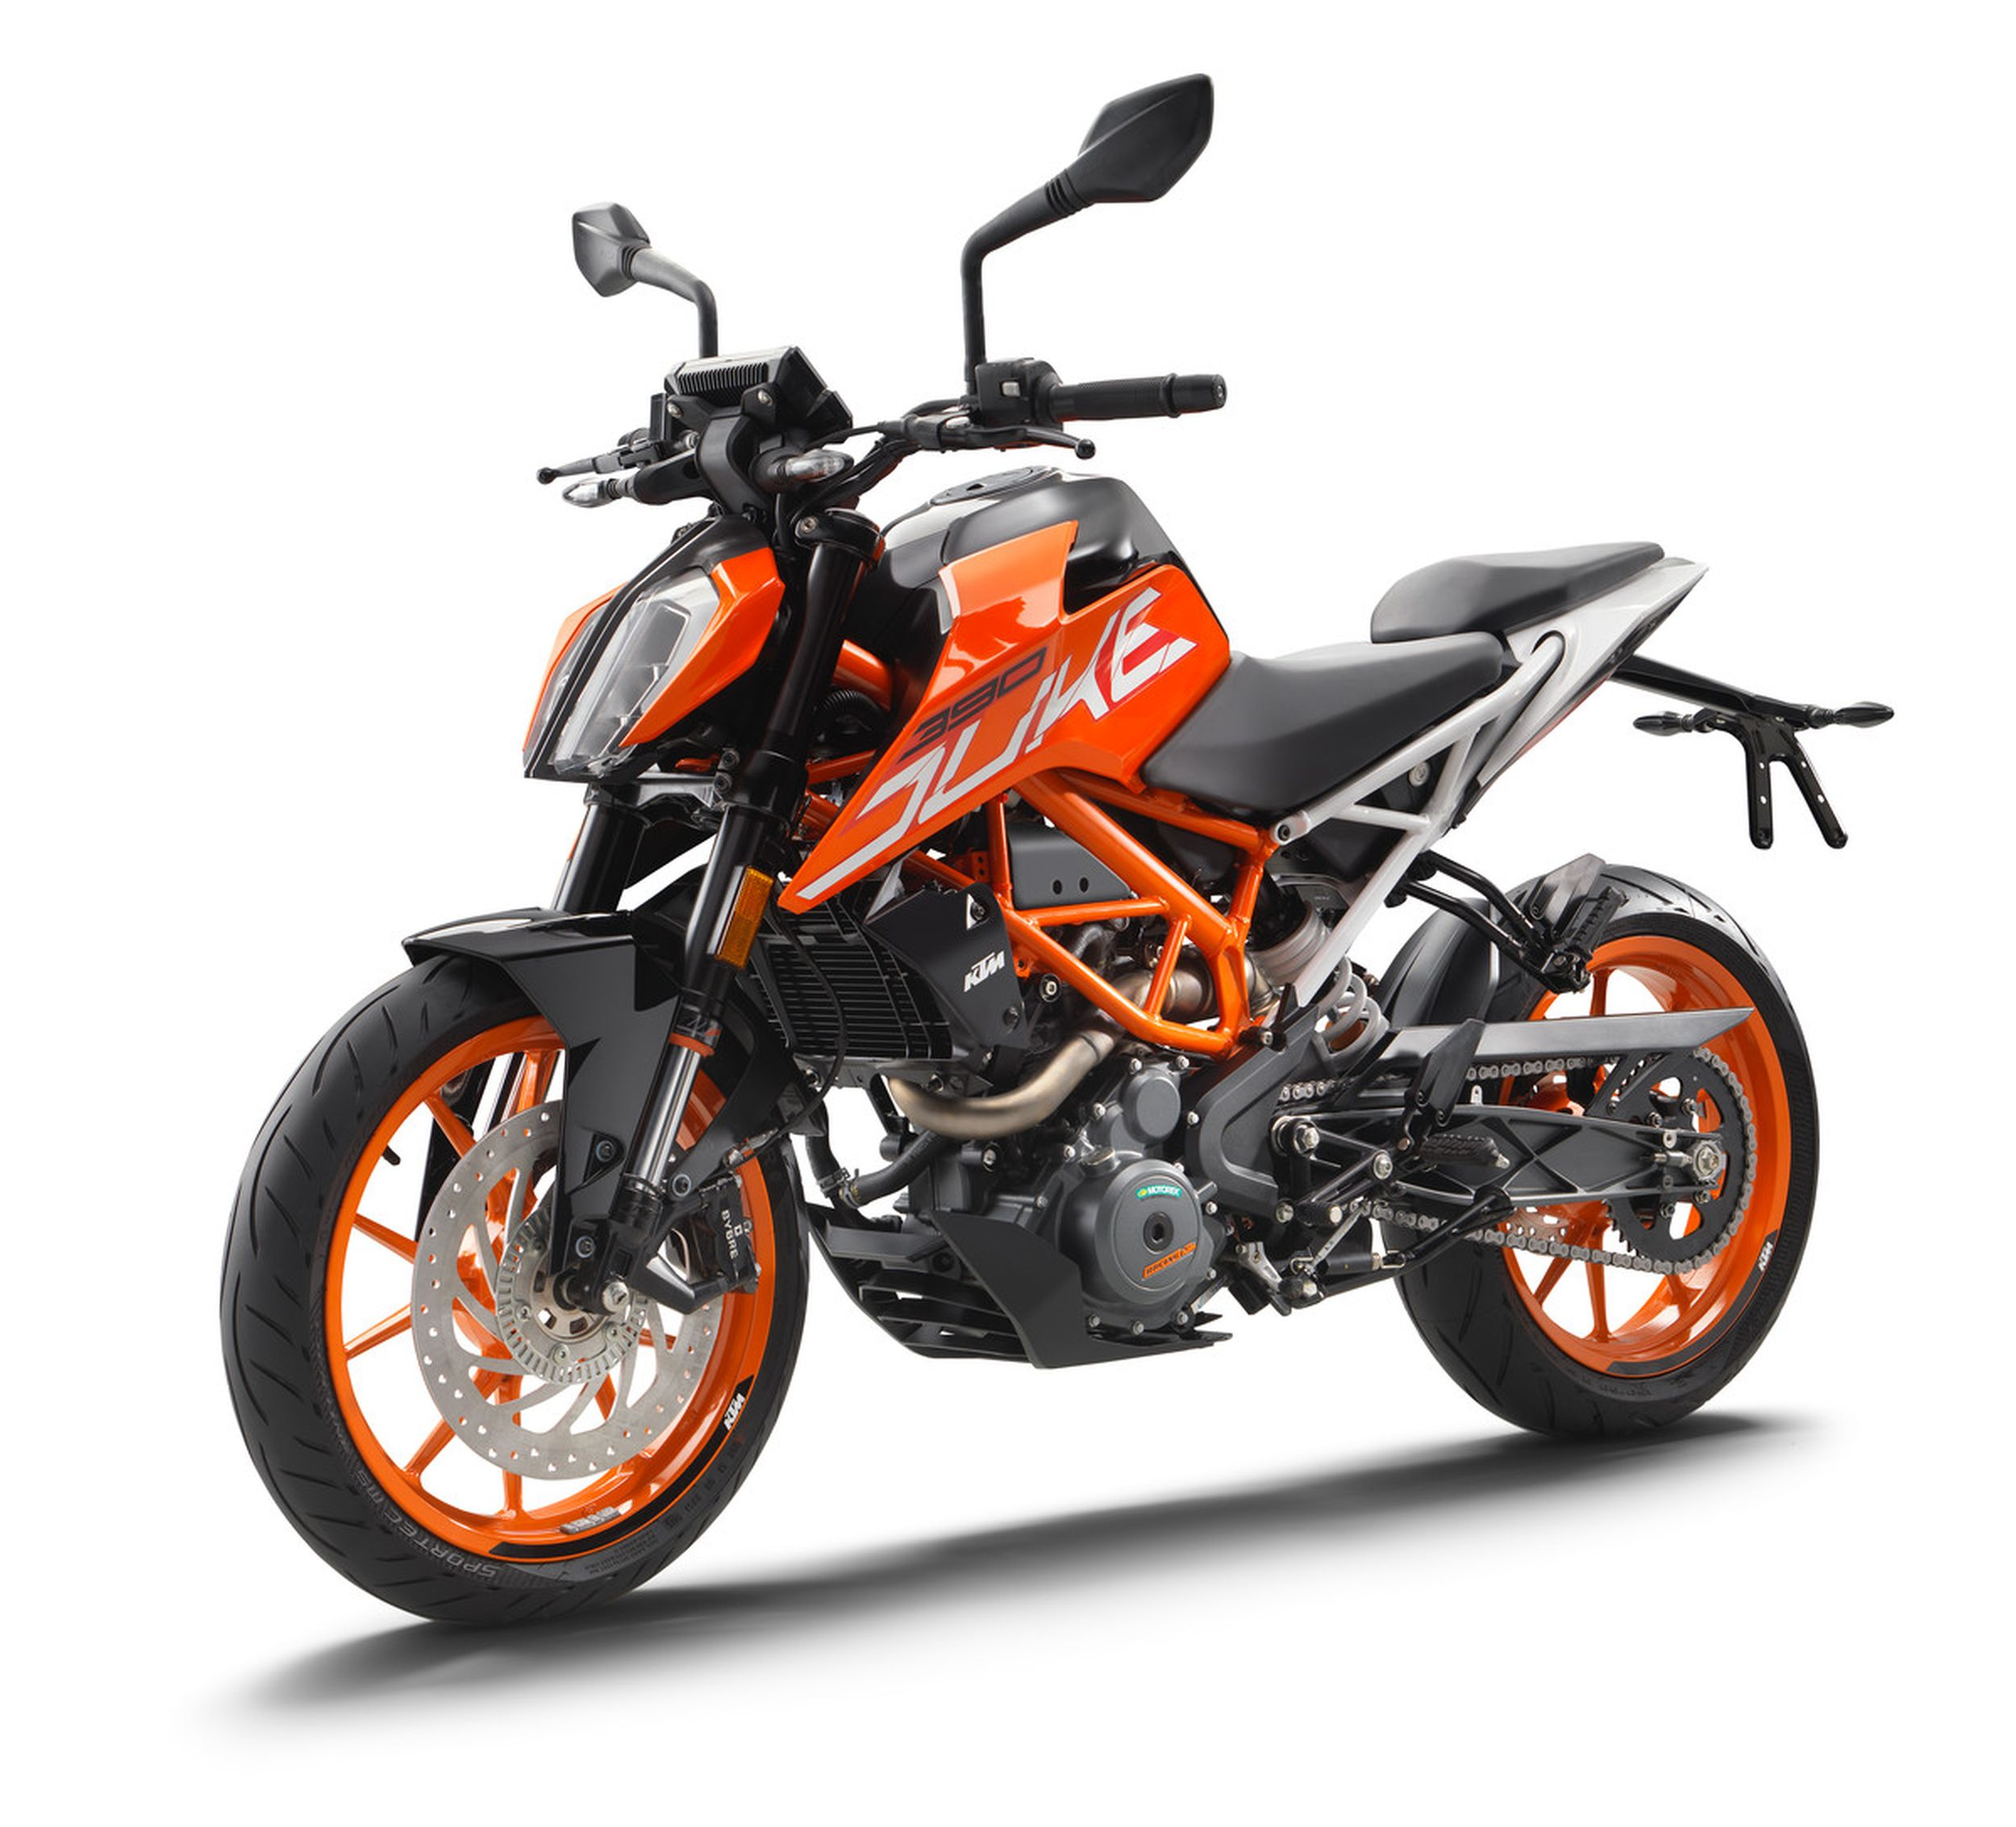 gebrauchte ktm 390 duke motorr der kaufen. Black Bedroom Furniture Sets. Home Design Ideas